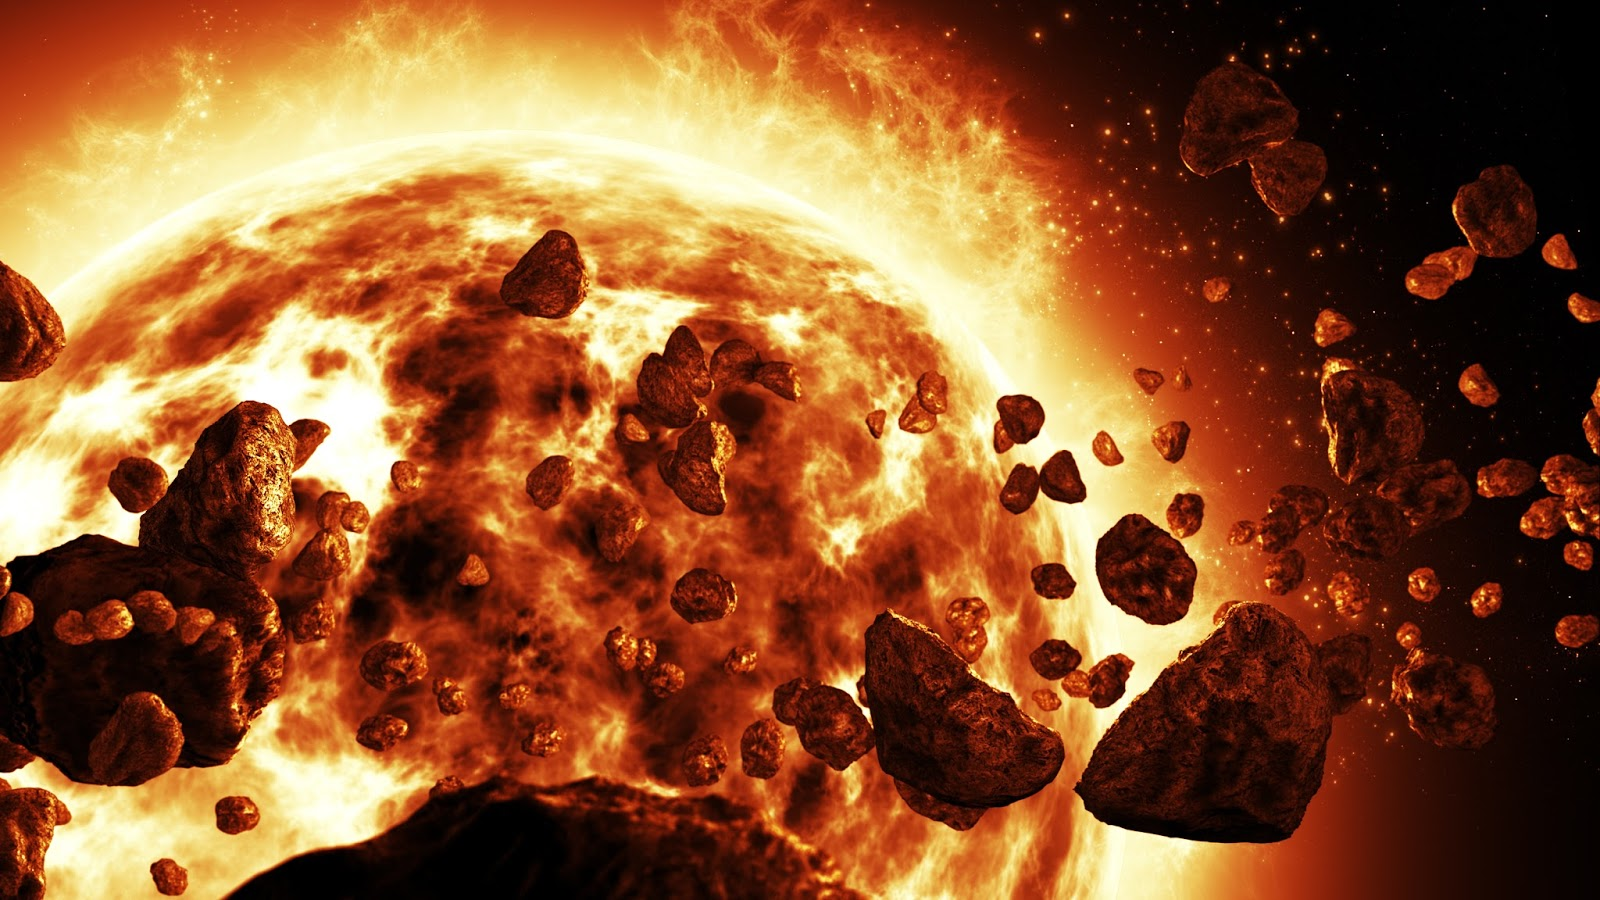 The Next Solar Storm Could Cripple Our Economy